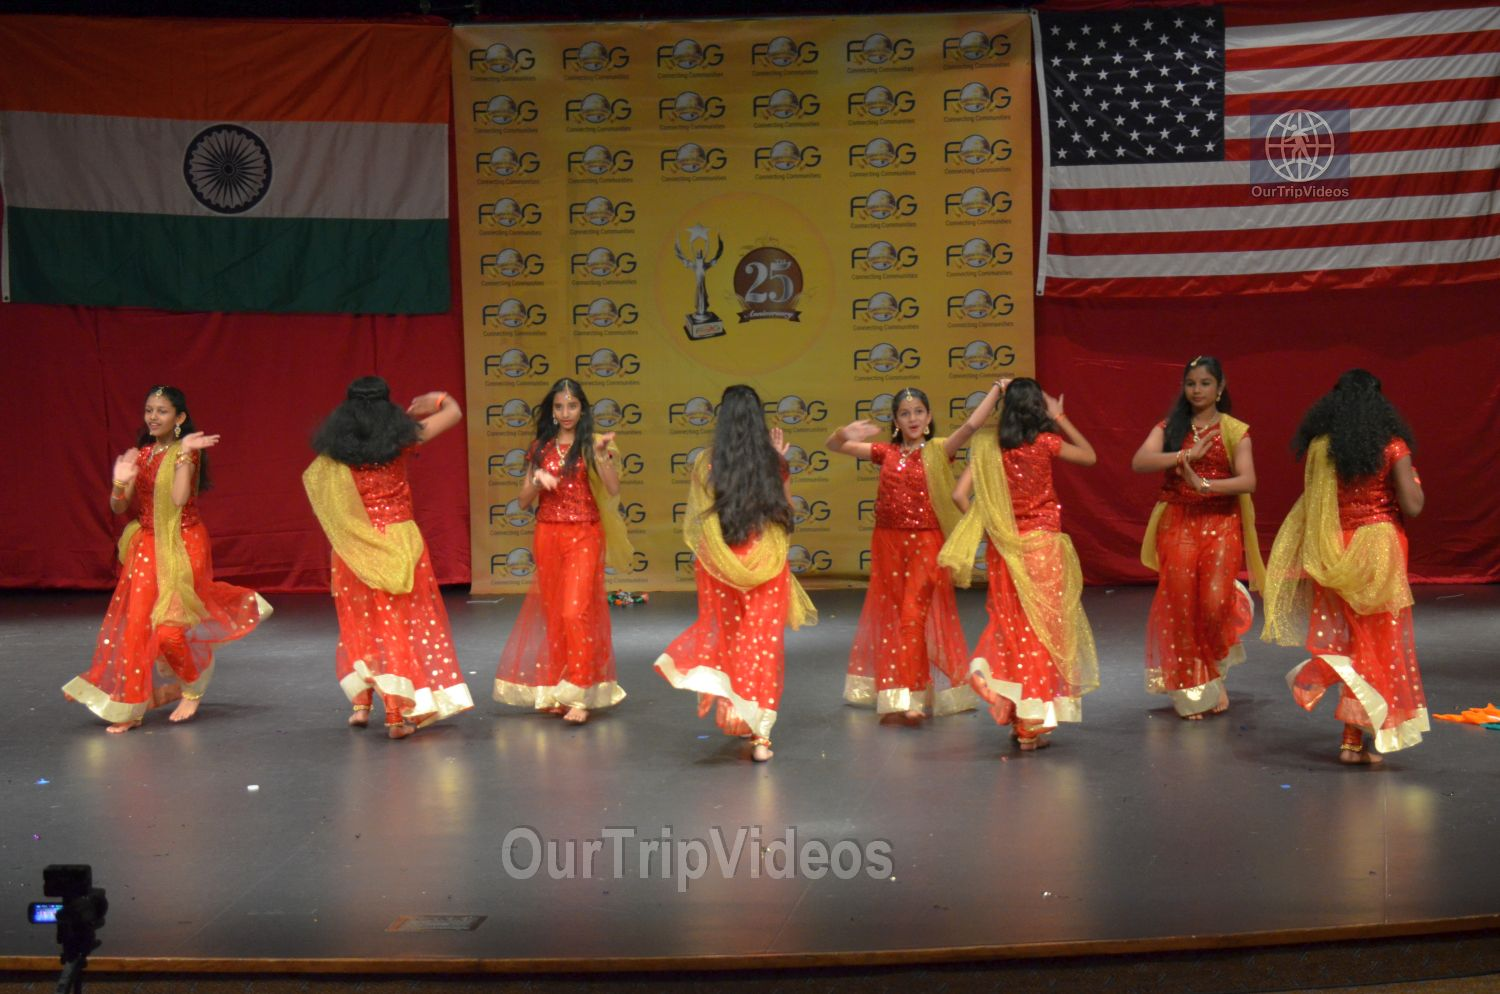 FOG Republic Day celebration, Santa Clara, CA, USA - Picture 9 of 25